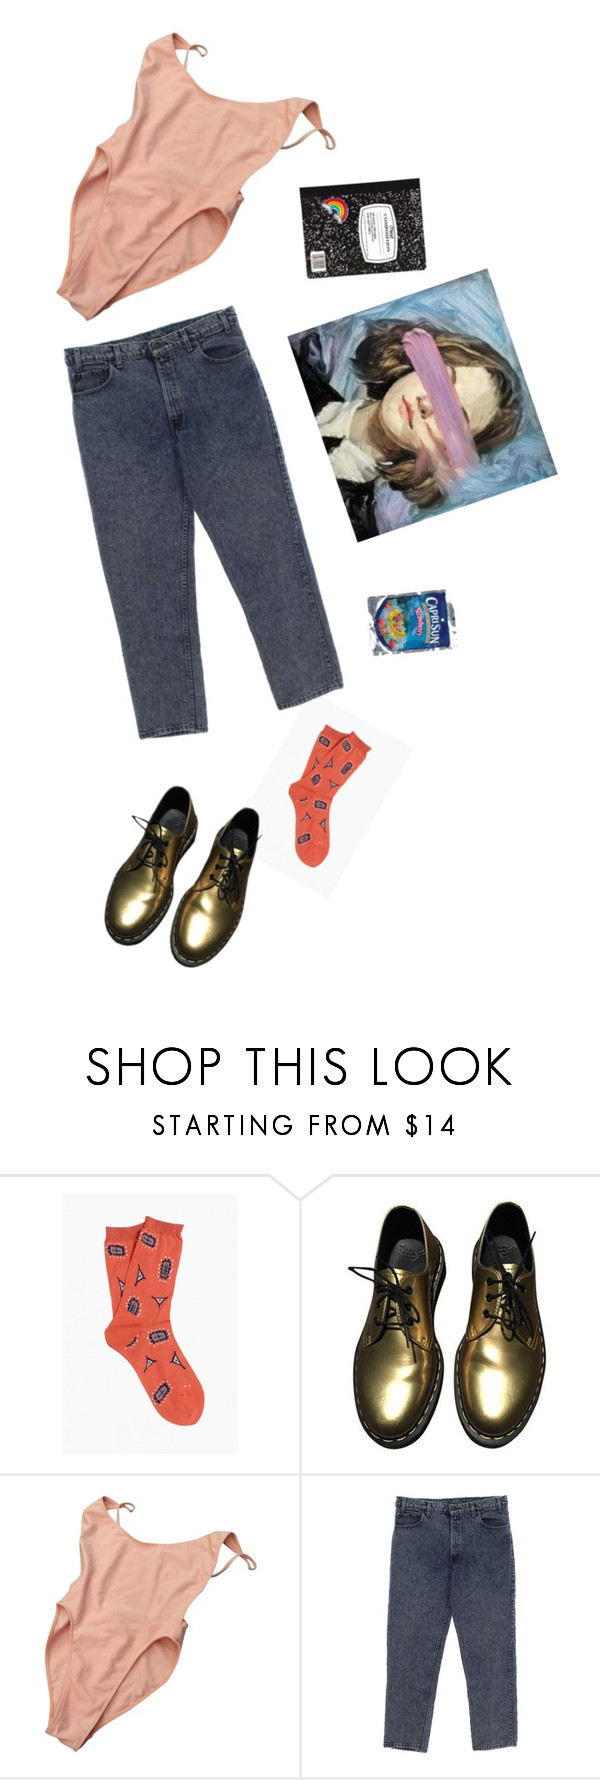 """Driving drunk"" by bananzah ❤ liked on Polyvore featuring Hansel from Basel, Dr. Martens, American Apparel, Love and Madness and FRUIT"